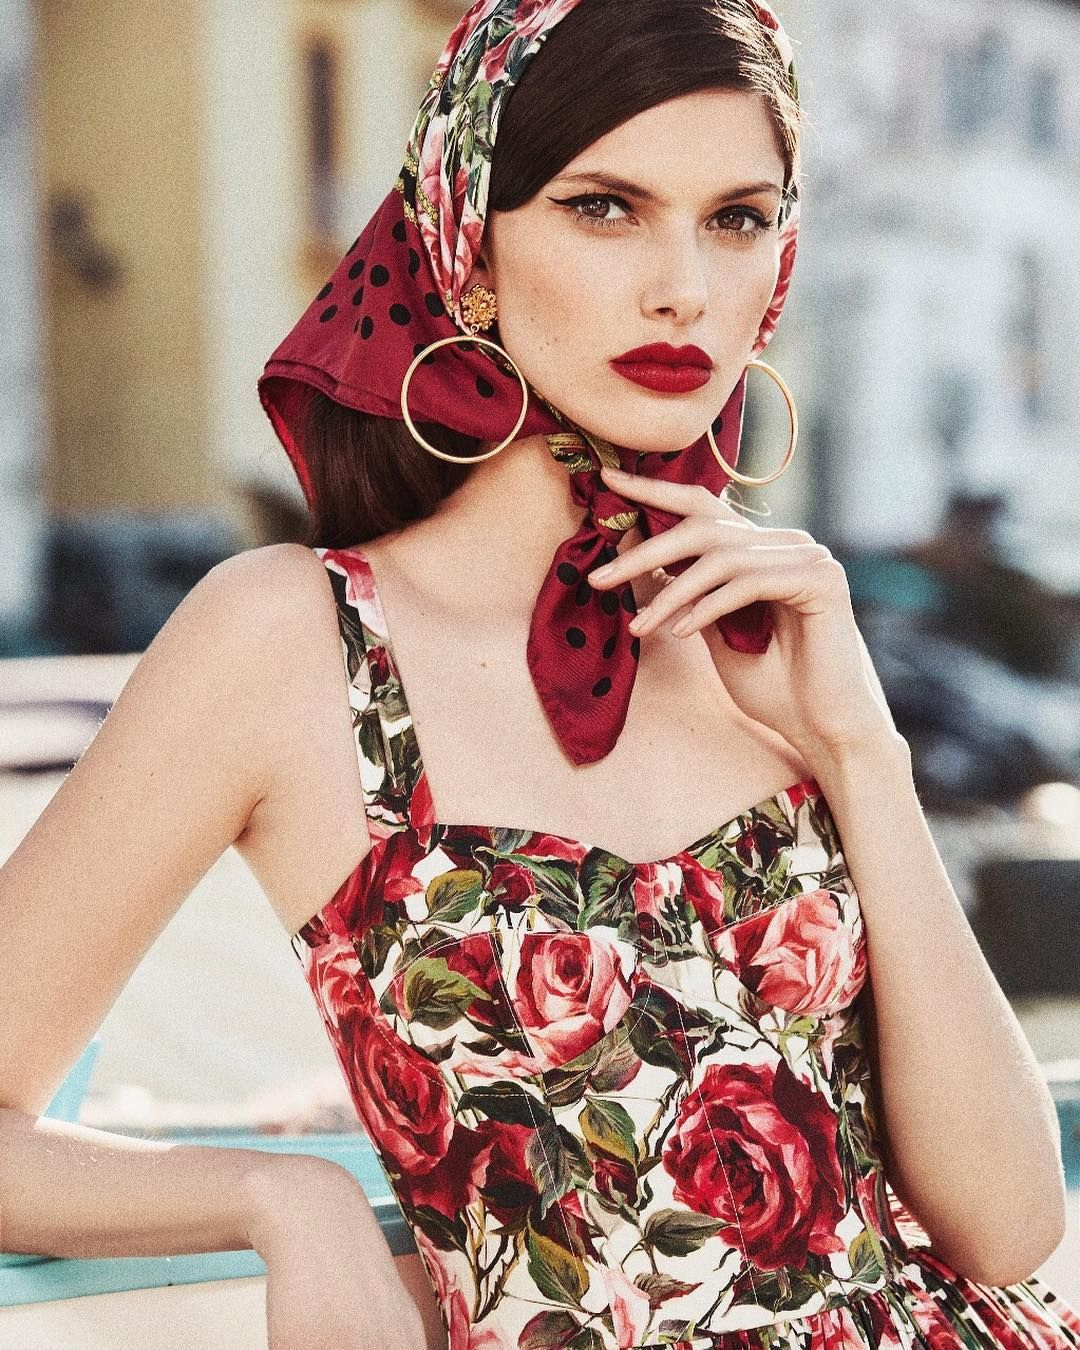 Dolce & Gabbana Reveals their Summer 2017 Ad Campaign, The